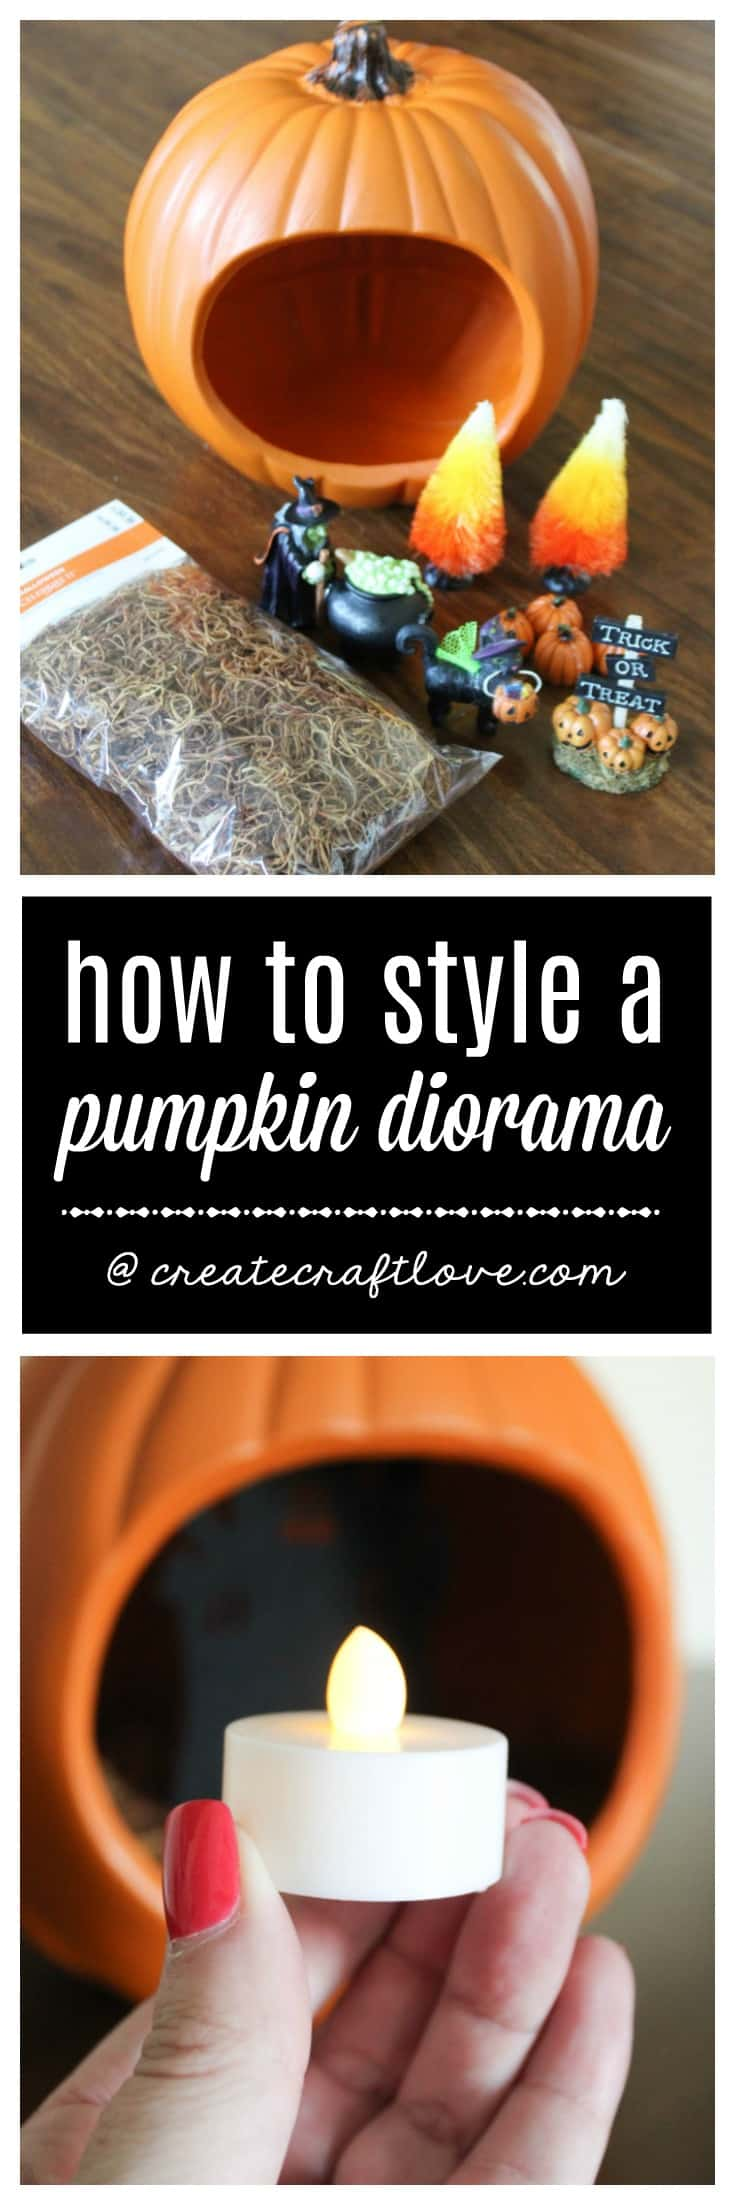 Make Your Own Diorama: How To Style A Pumpkin Diorama